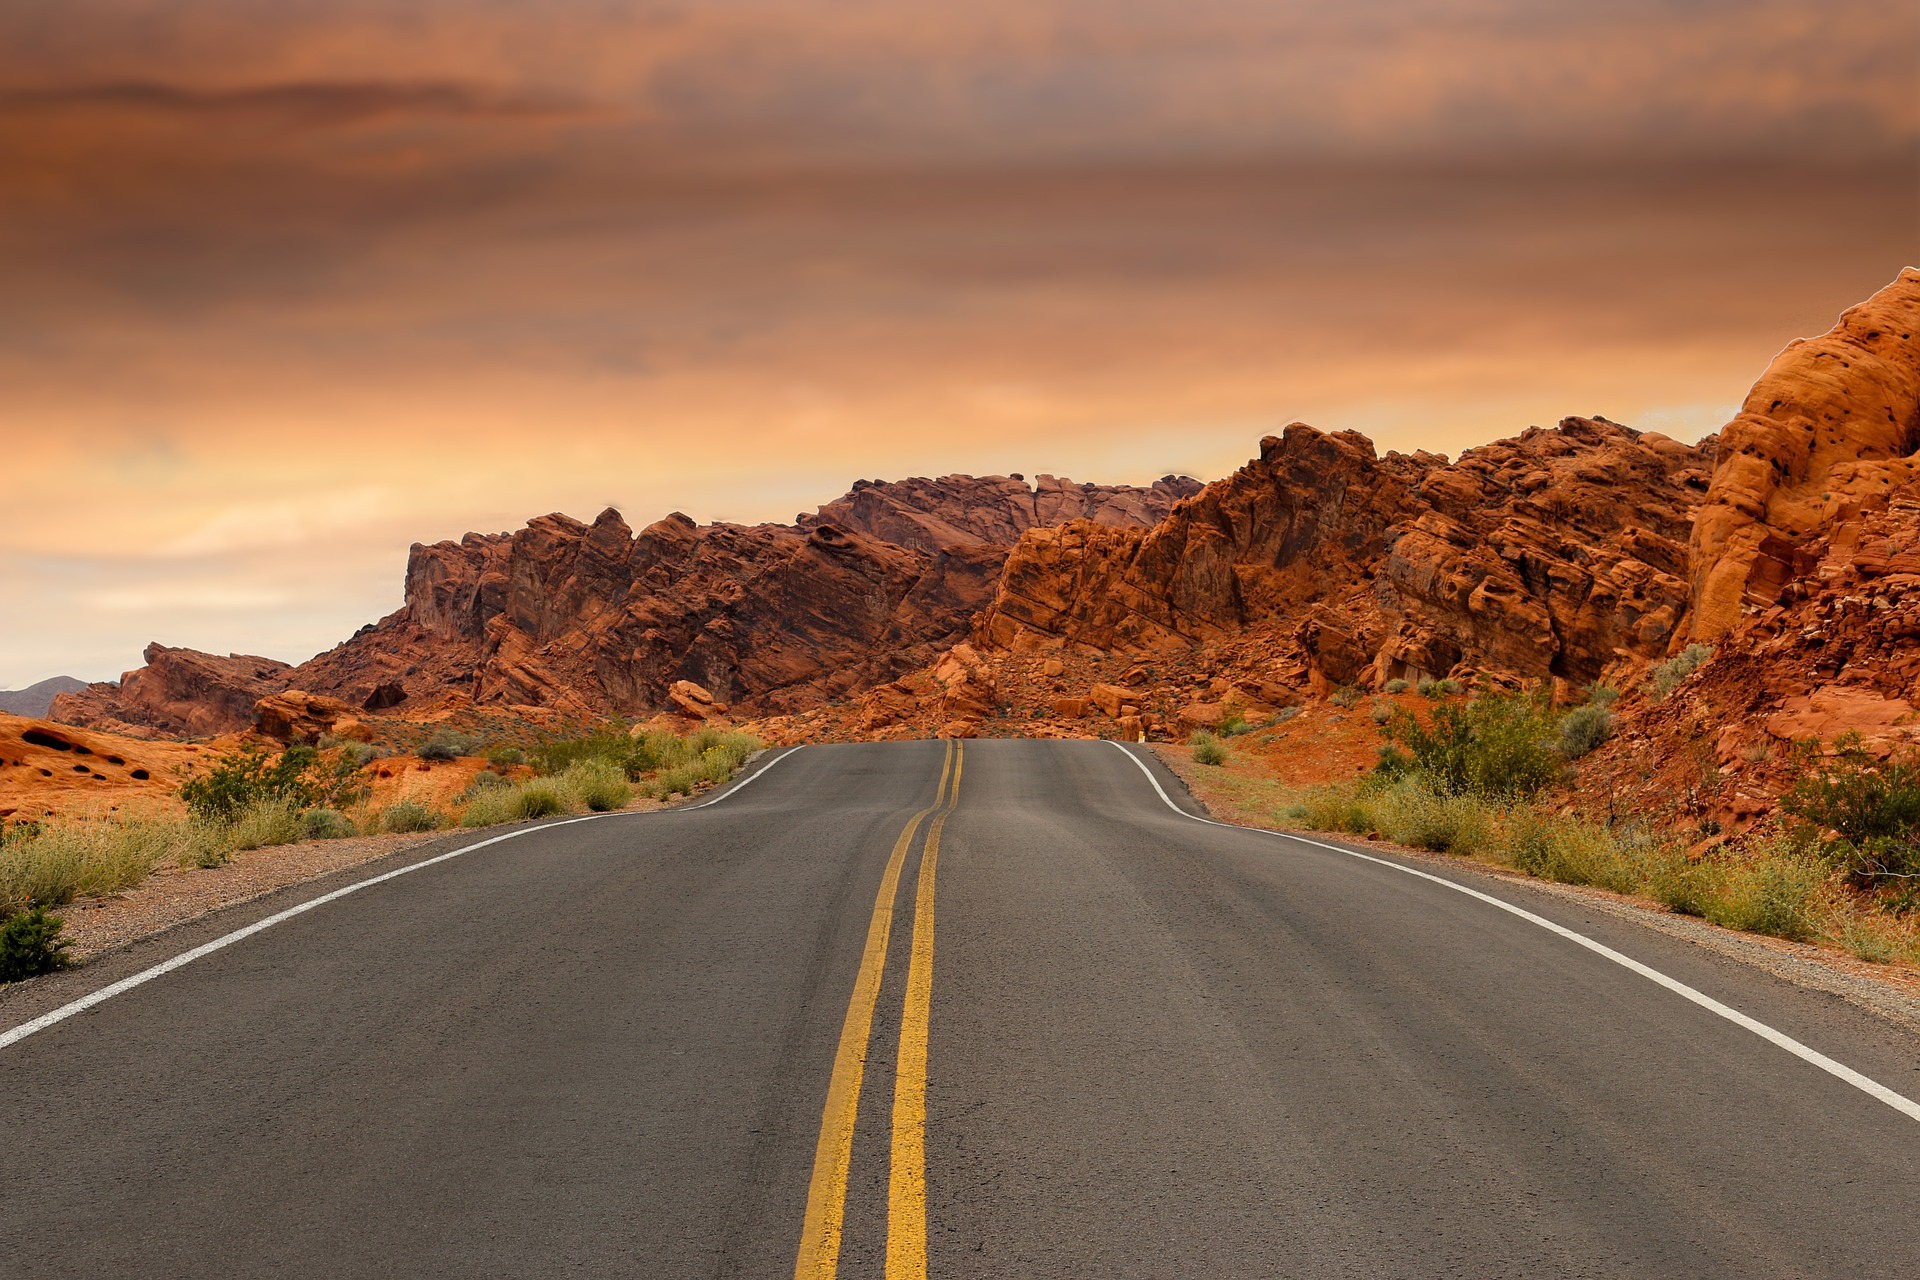 On the road surrounded by Red Rock Canyon Mountains, Nevada